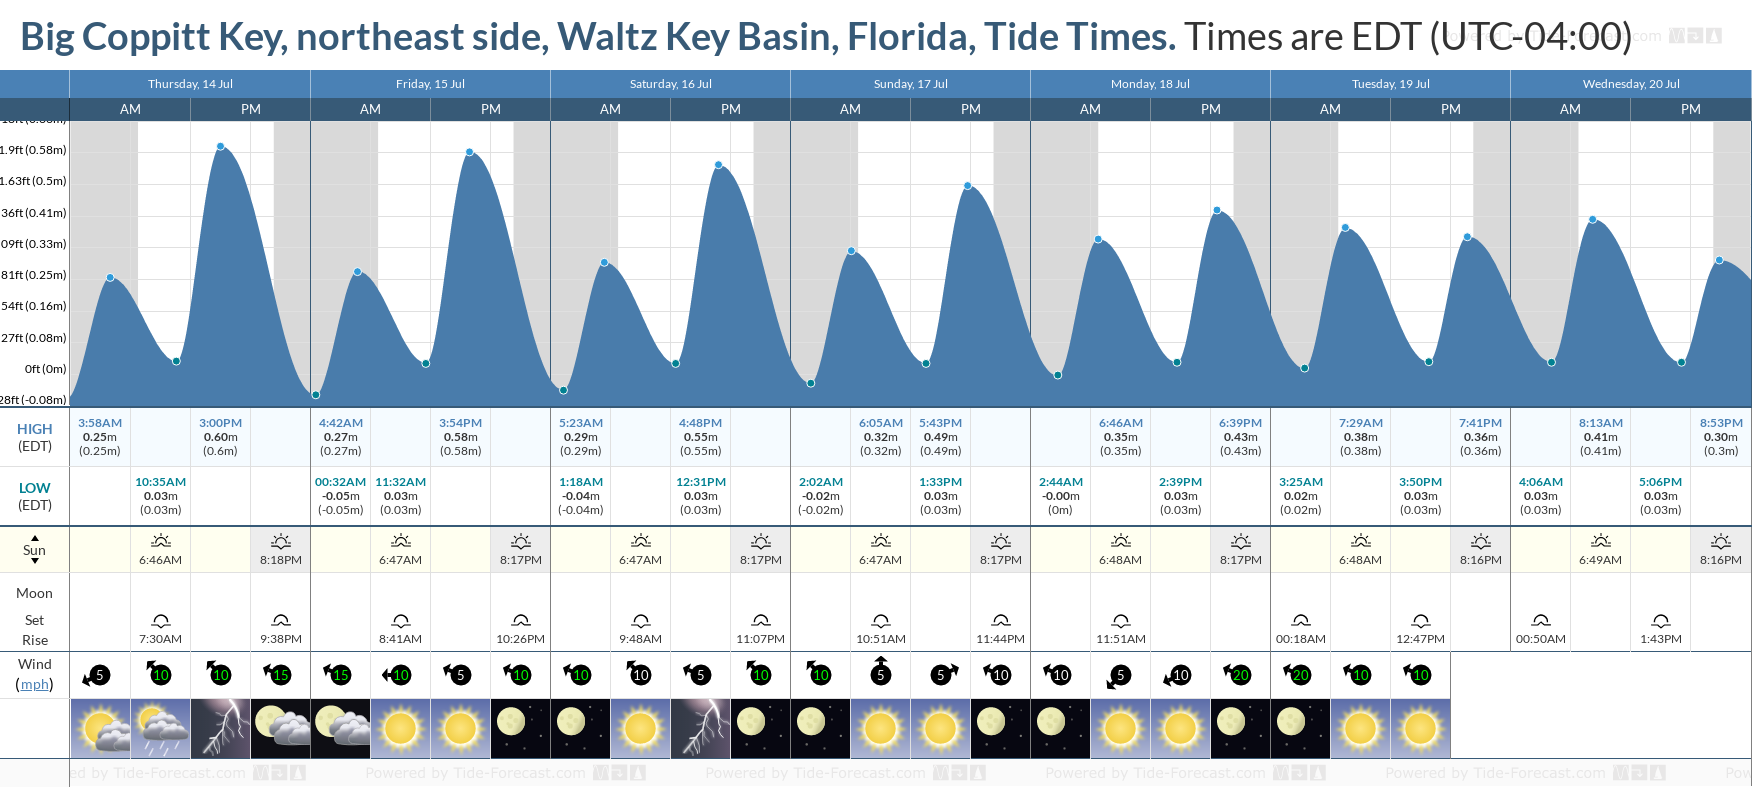 Big Coppitt Key, northeast side, Waltz Key Basin, Florida Tide Chart including high and low tide tide times for the next 7 days